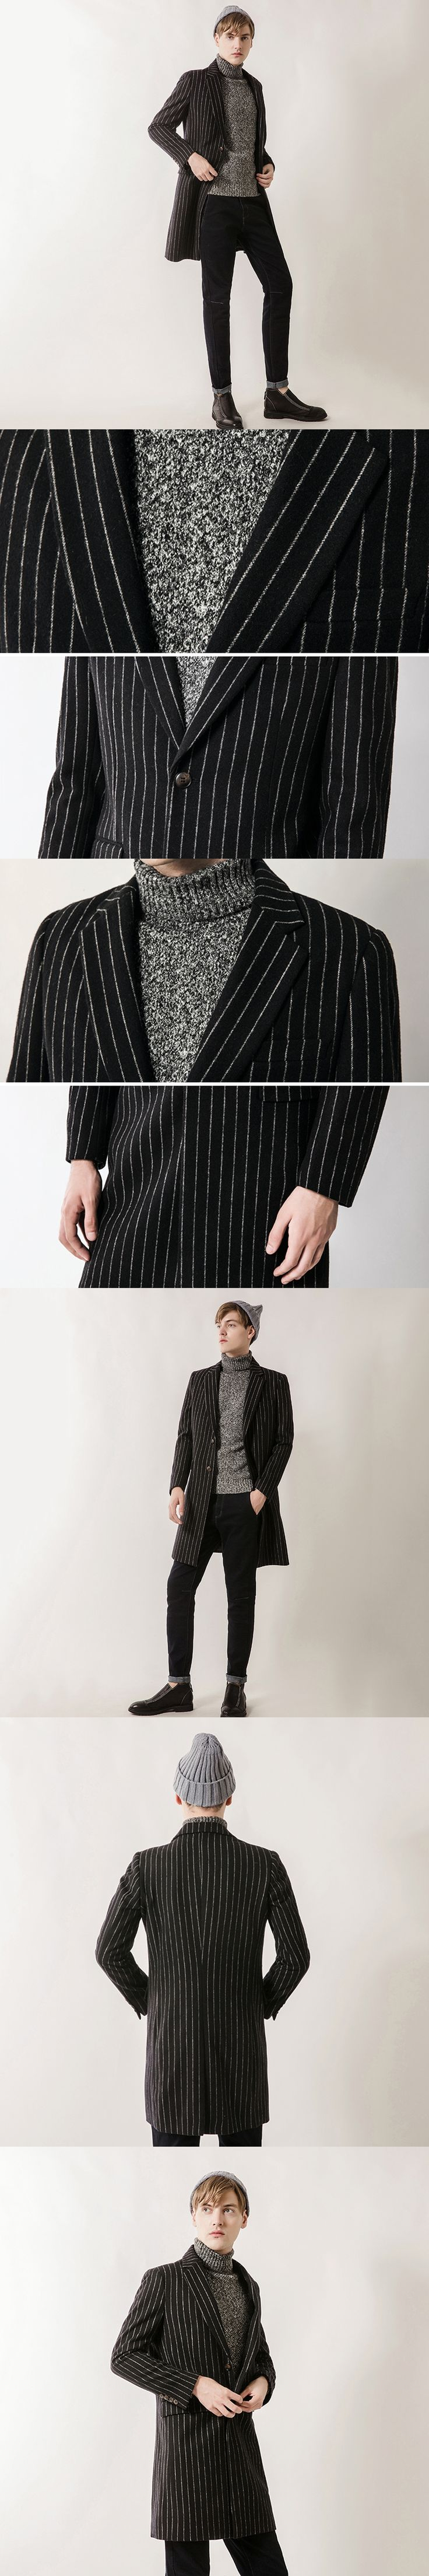 2017 Autumn Fashion Business Men Blend Wool Jacket Striped Long Trench Coat Turn-down Collar Leisure Tops Quality Veste Homme